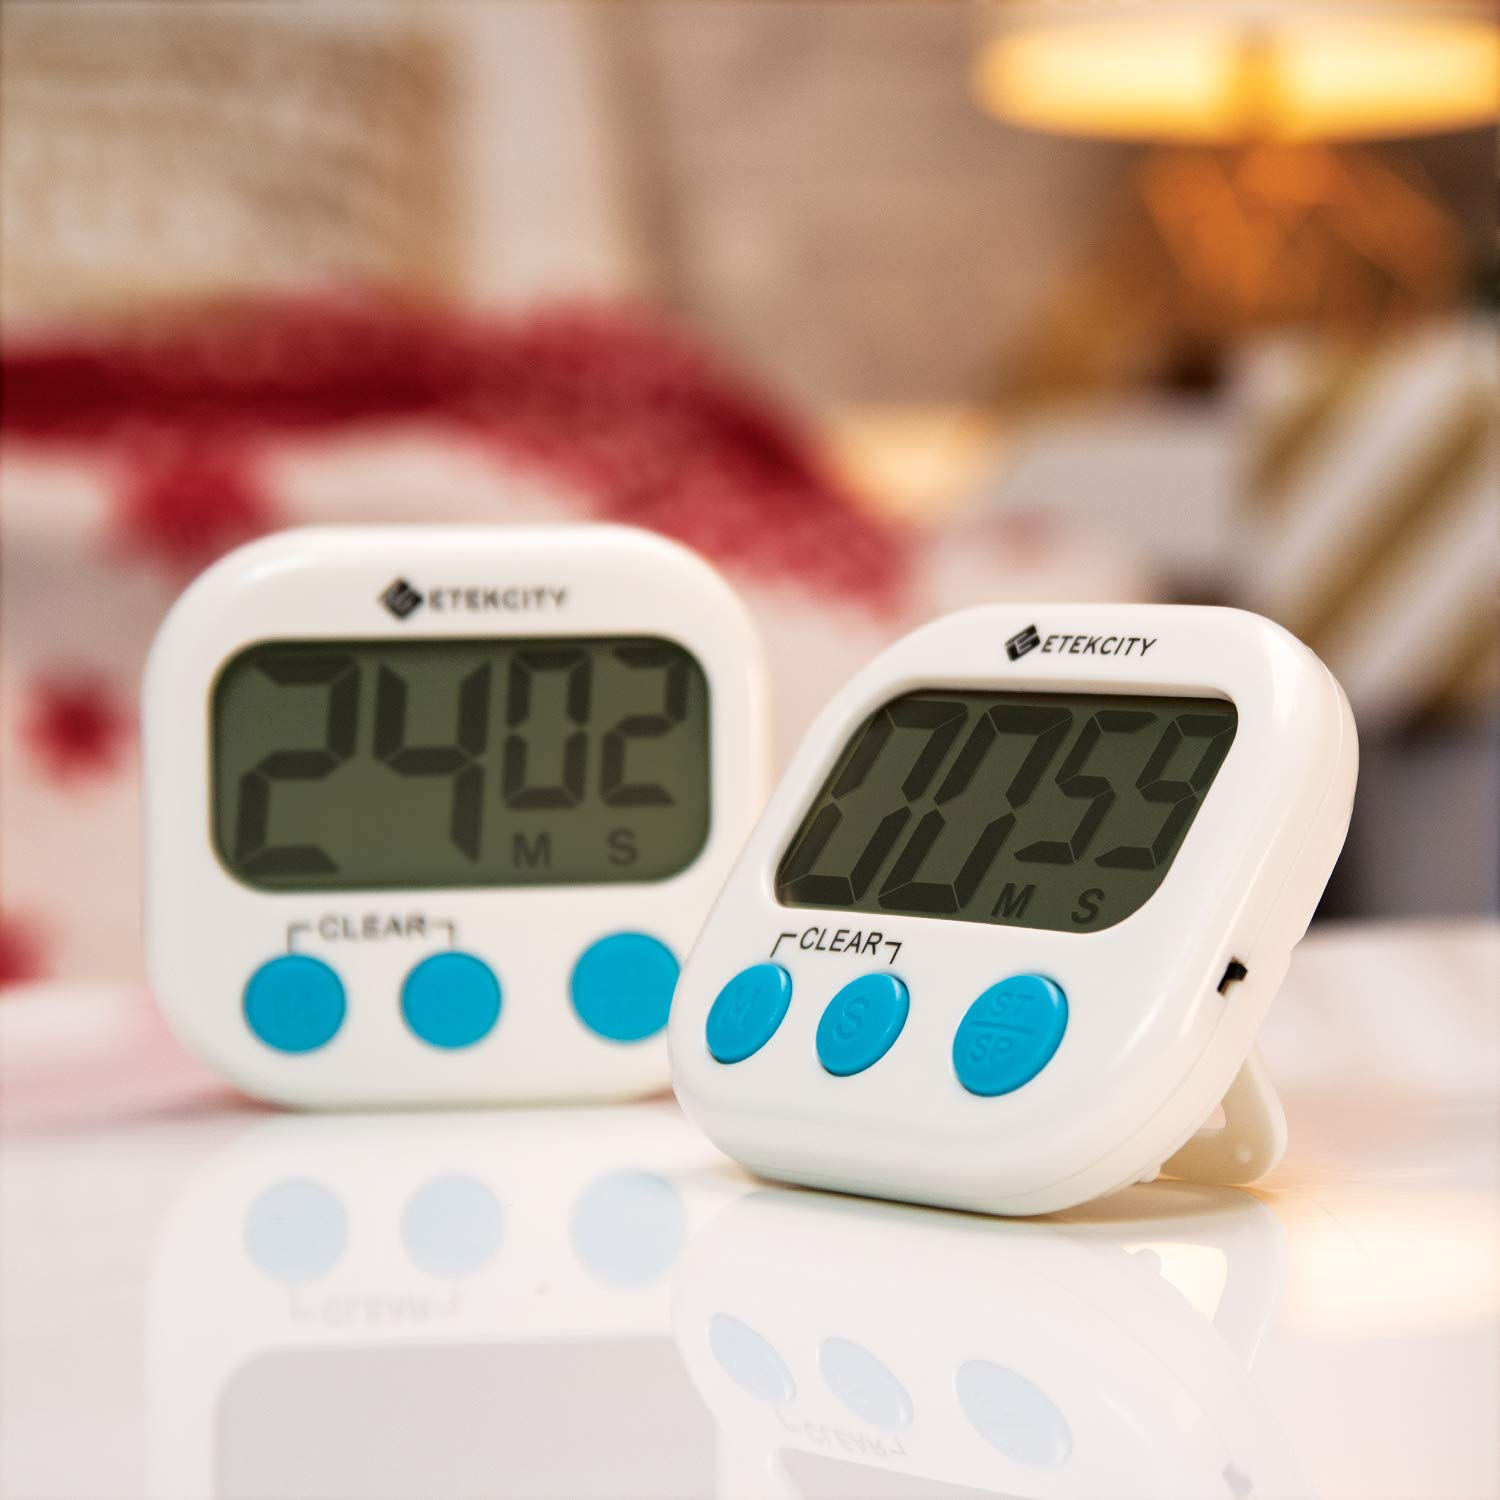 Etekcity digital kitchen timer